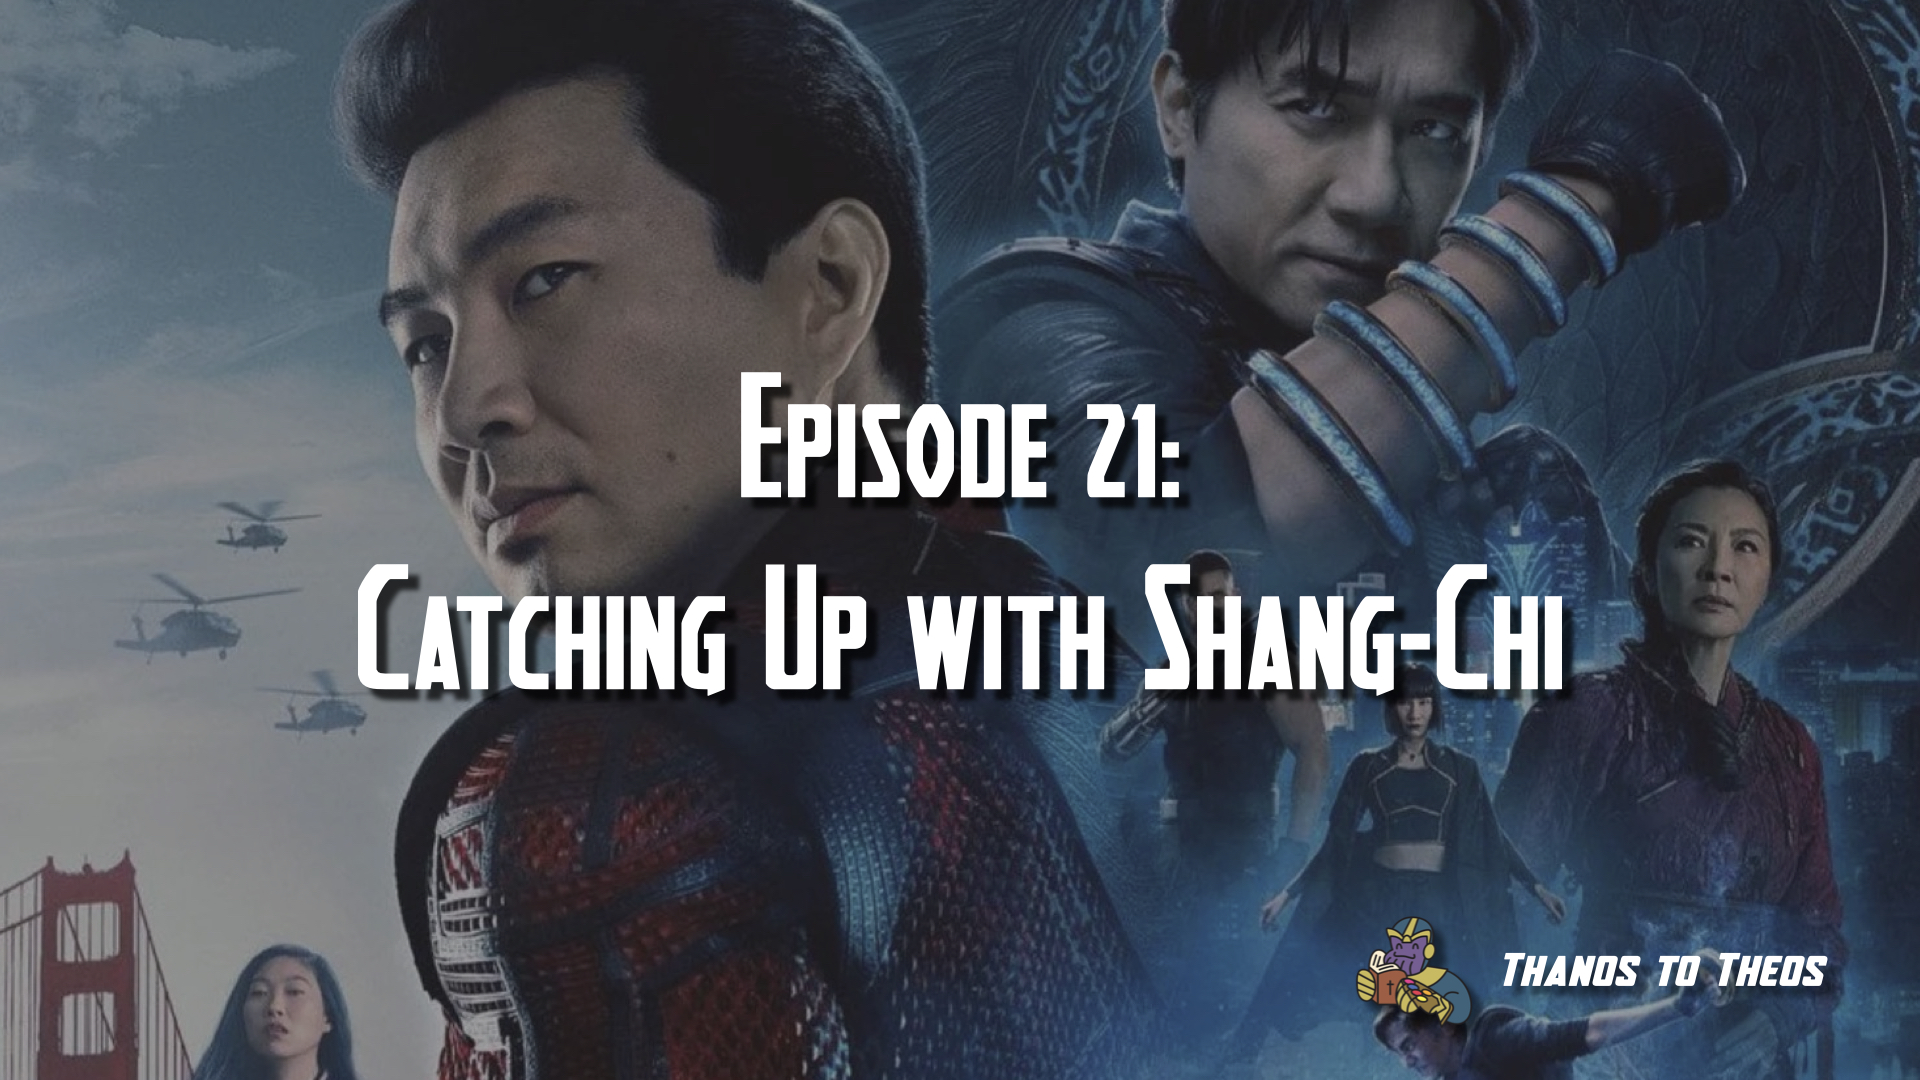 Episode 21: Catching up with Shang-Chi